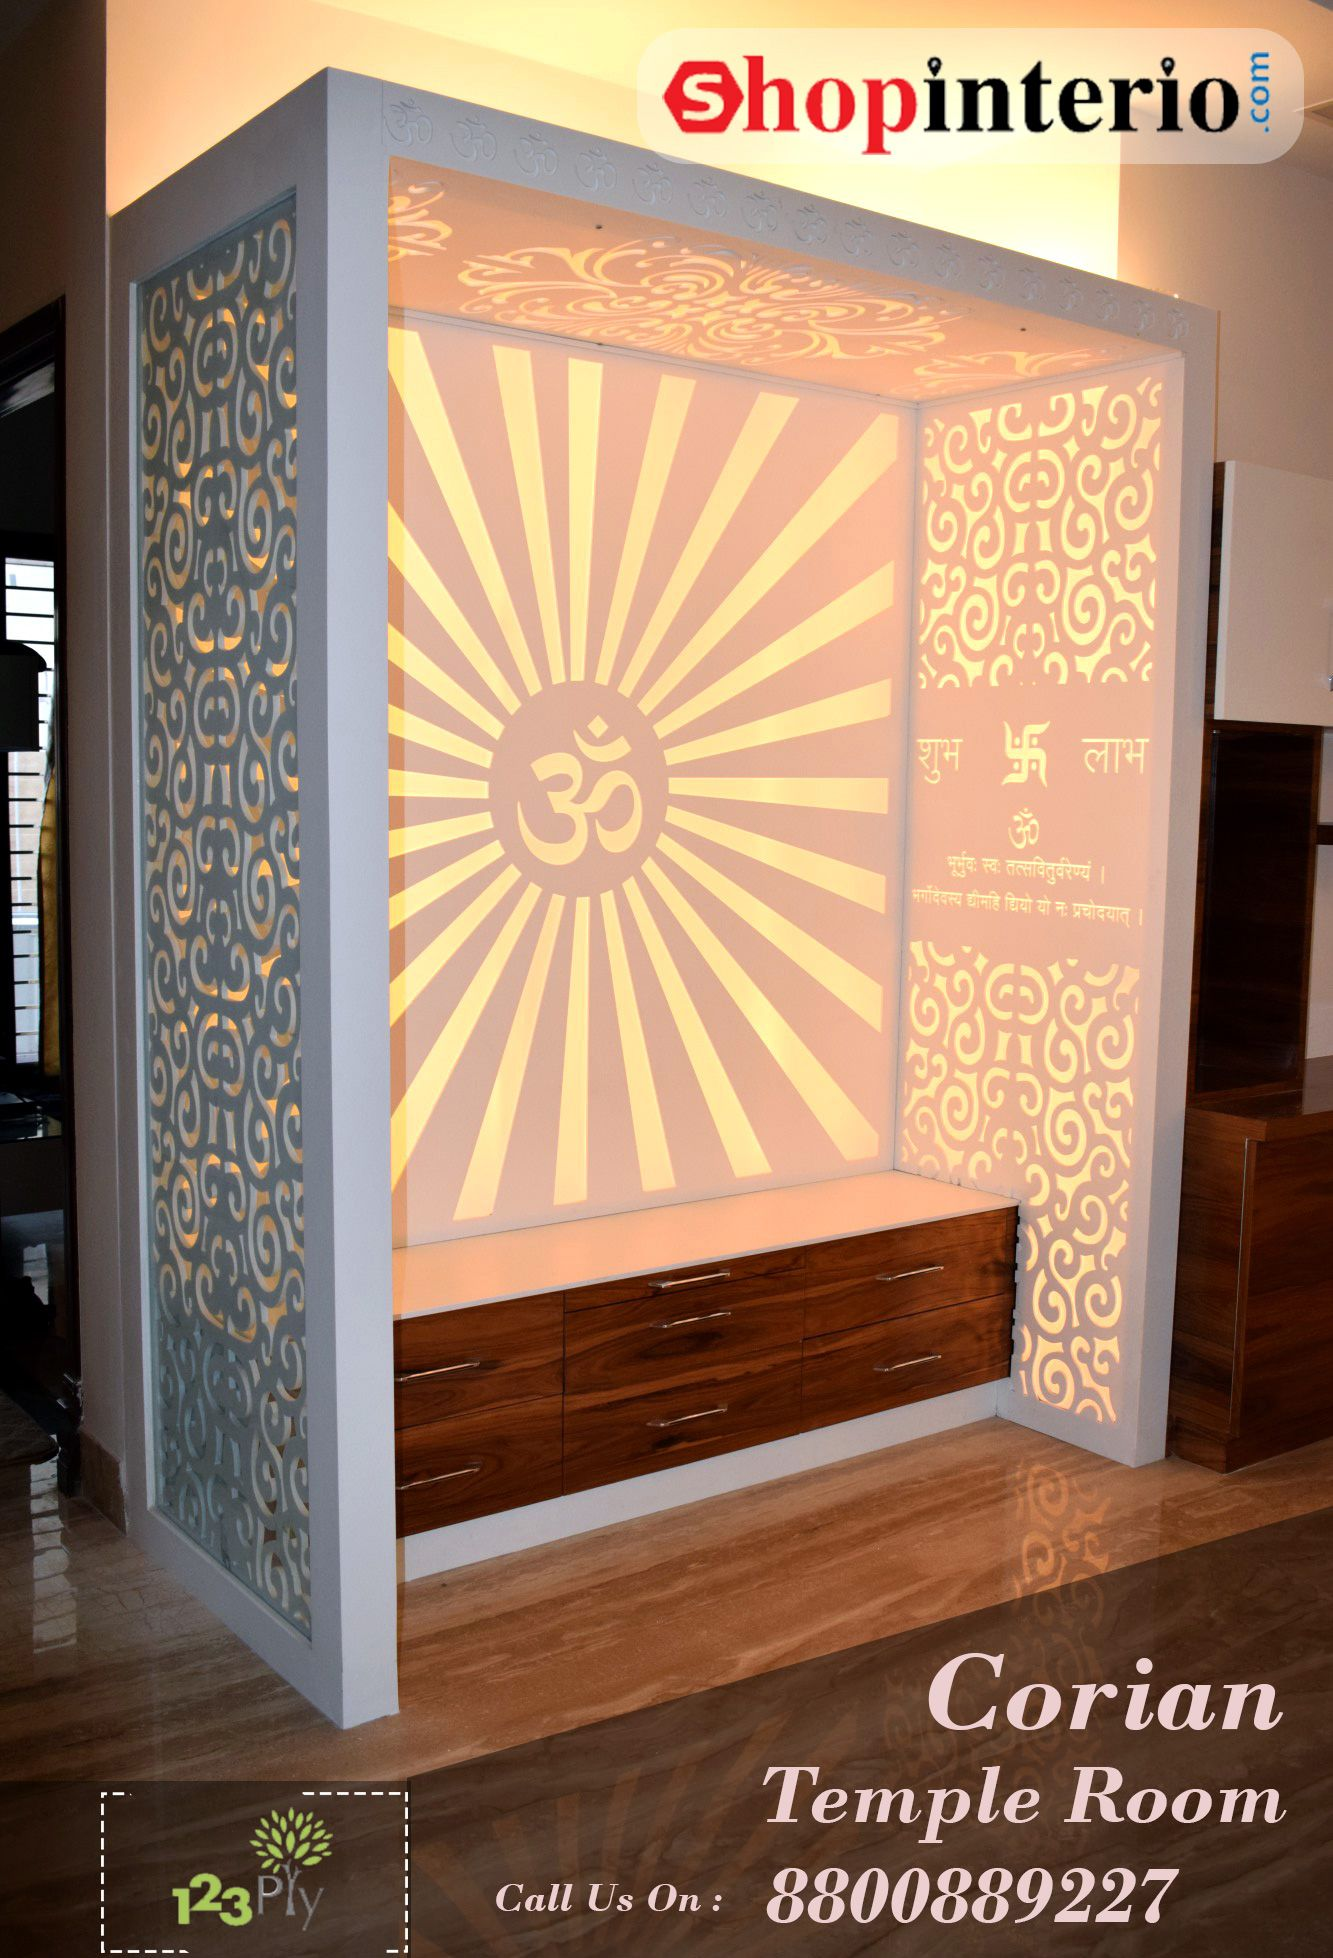 Pin By D On House Pinterest Dupont Corian Corian And